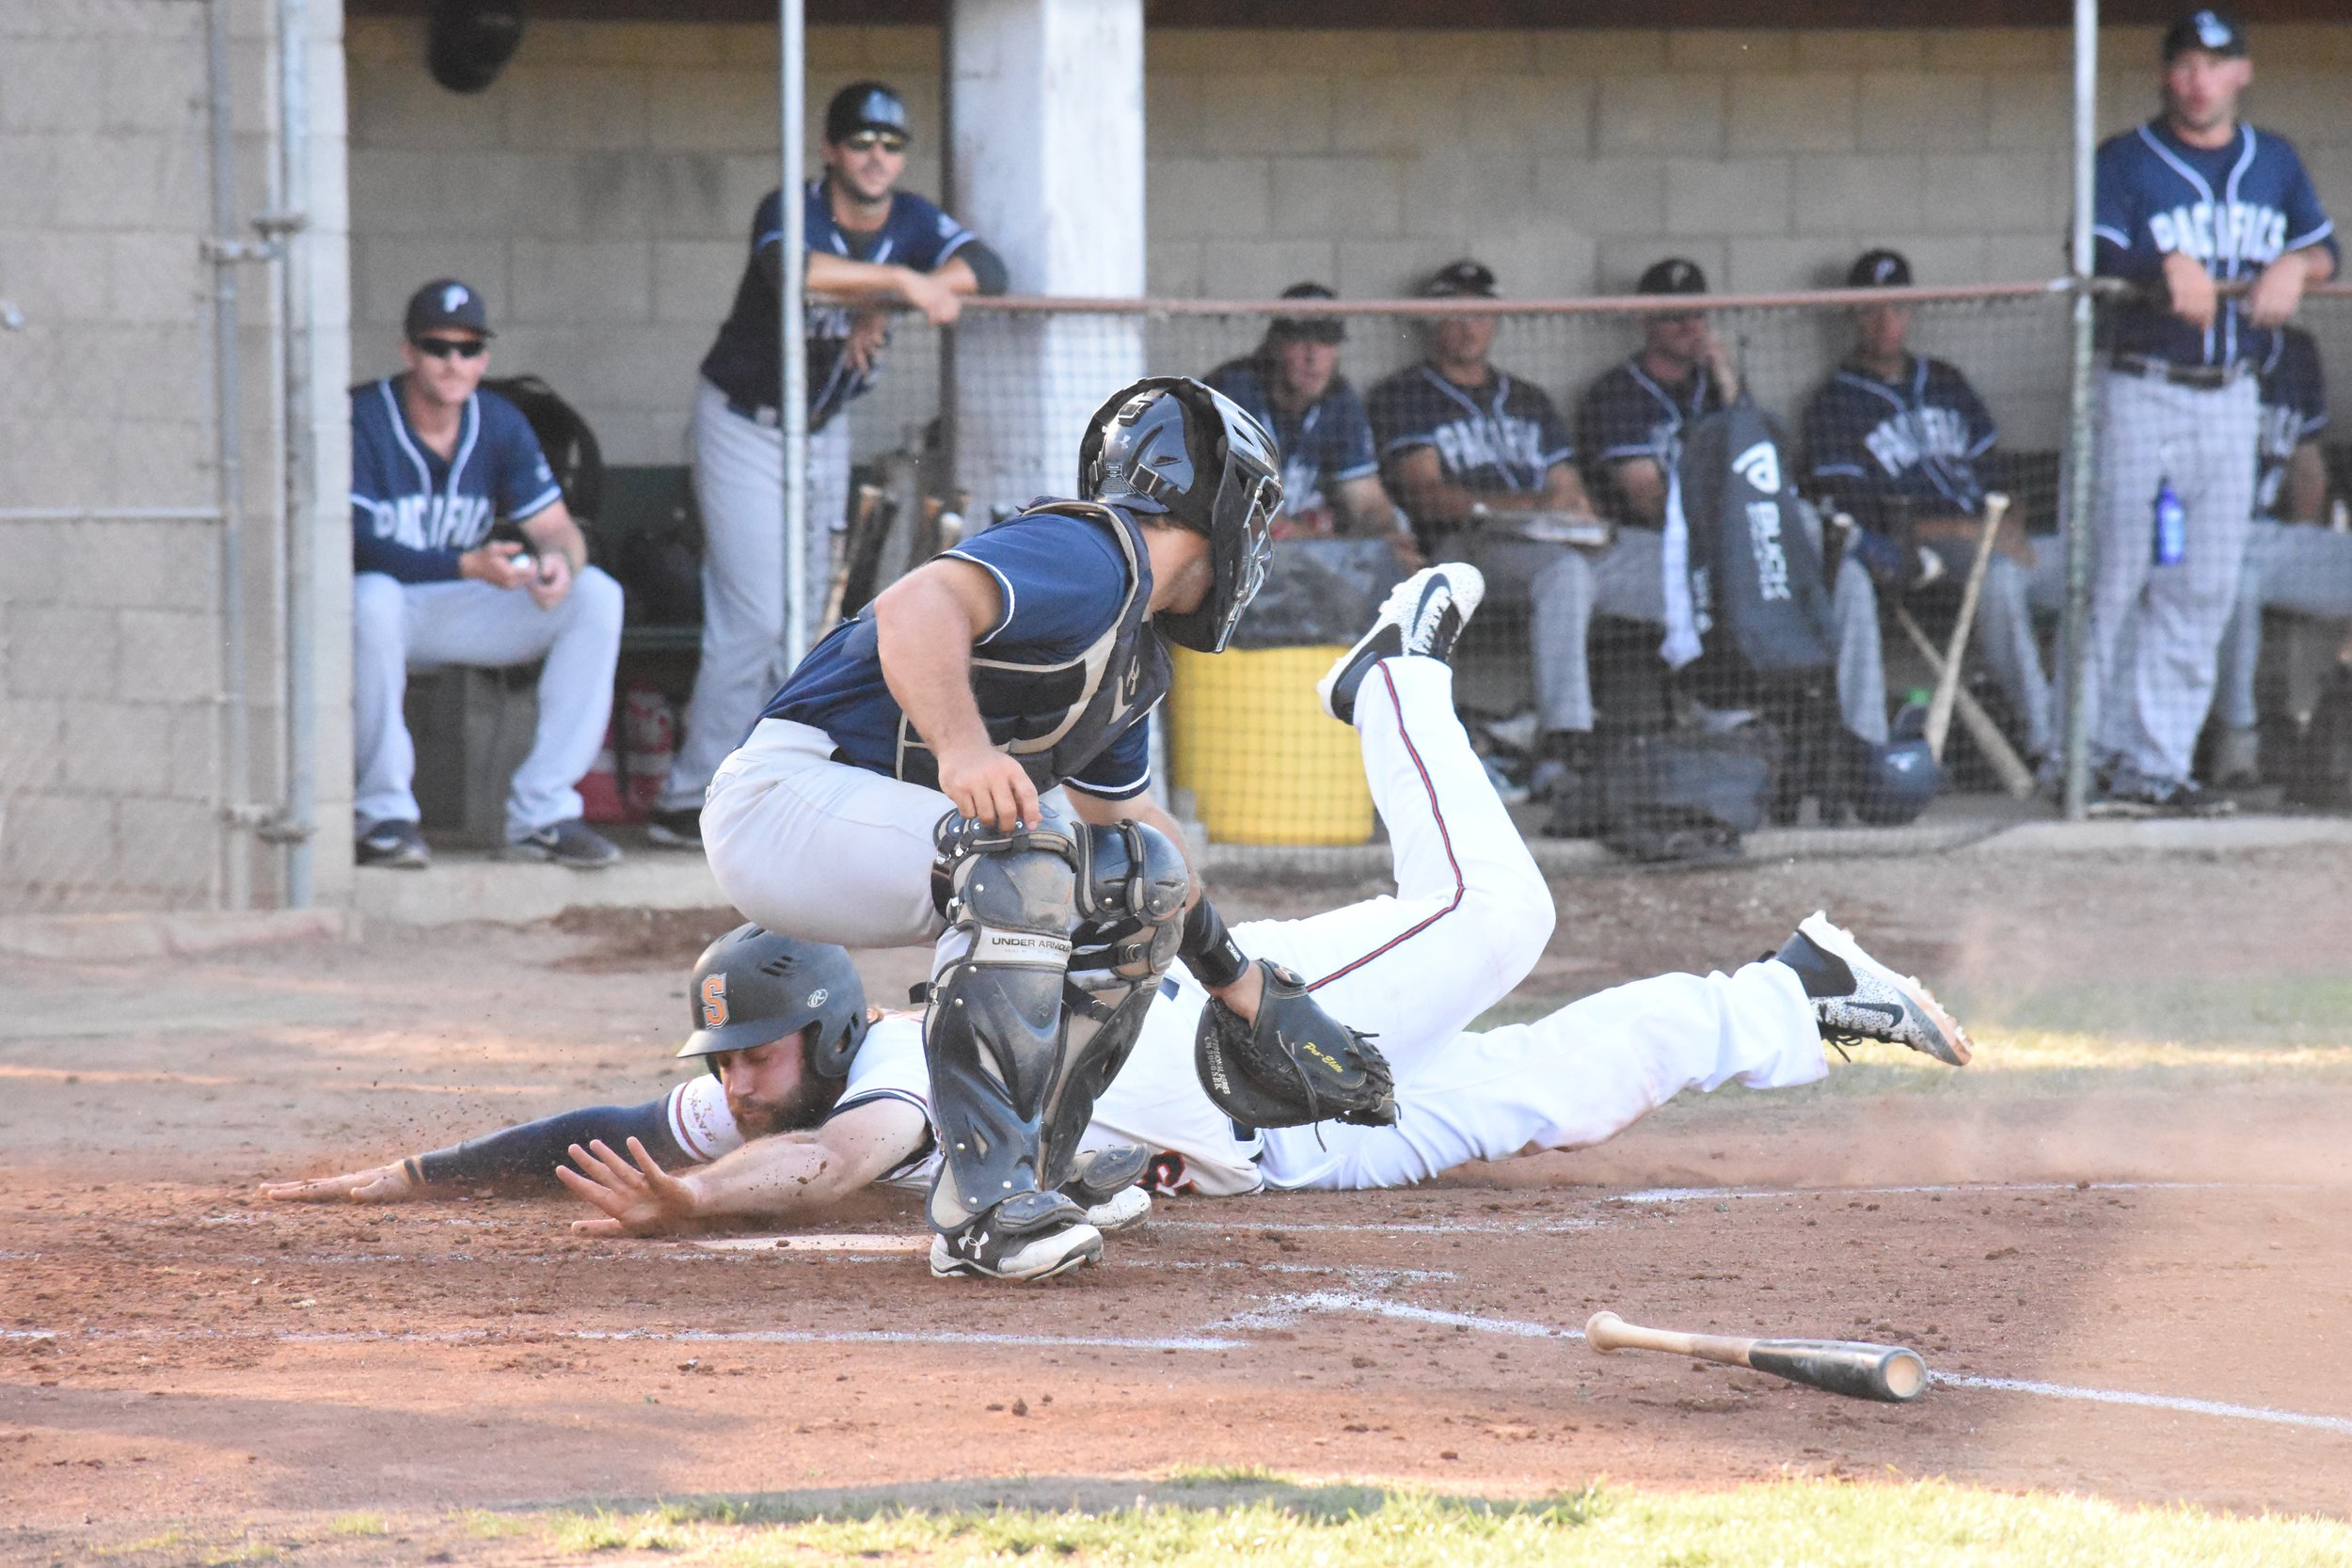 Isaac Wenrich scores the second run in Thursday's 9-5 victory over the San Rafael Pacifics at Peoples Home Equity Ballpark at Arnold Field. (James W. Toy III / Sonoma Stompers)